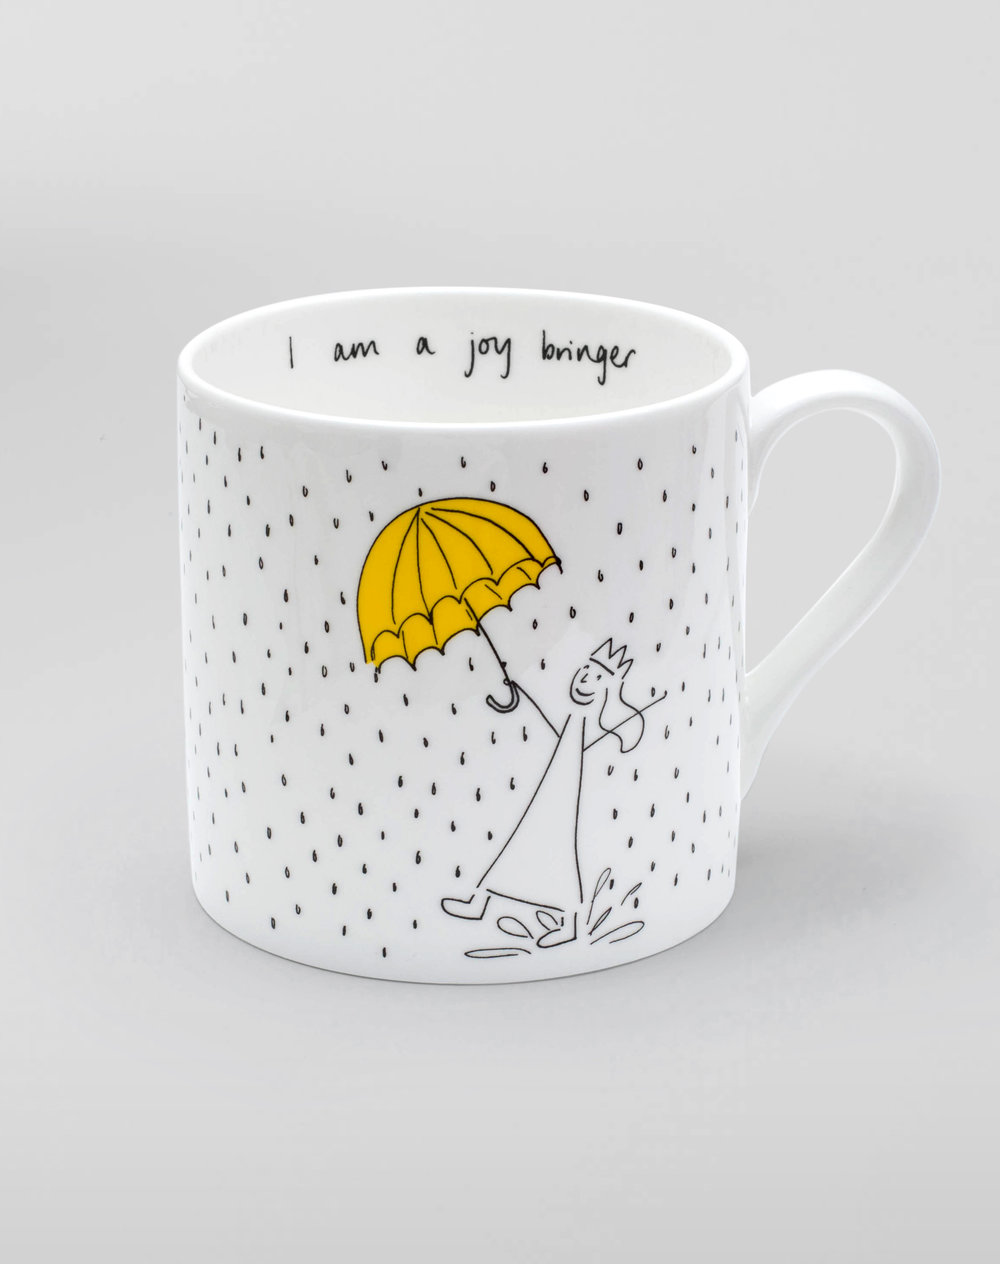 I AM a Joy bringer MUG.jpg